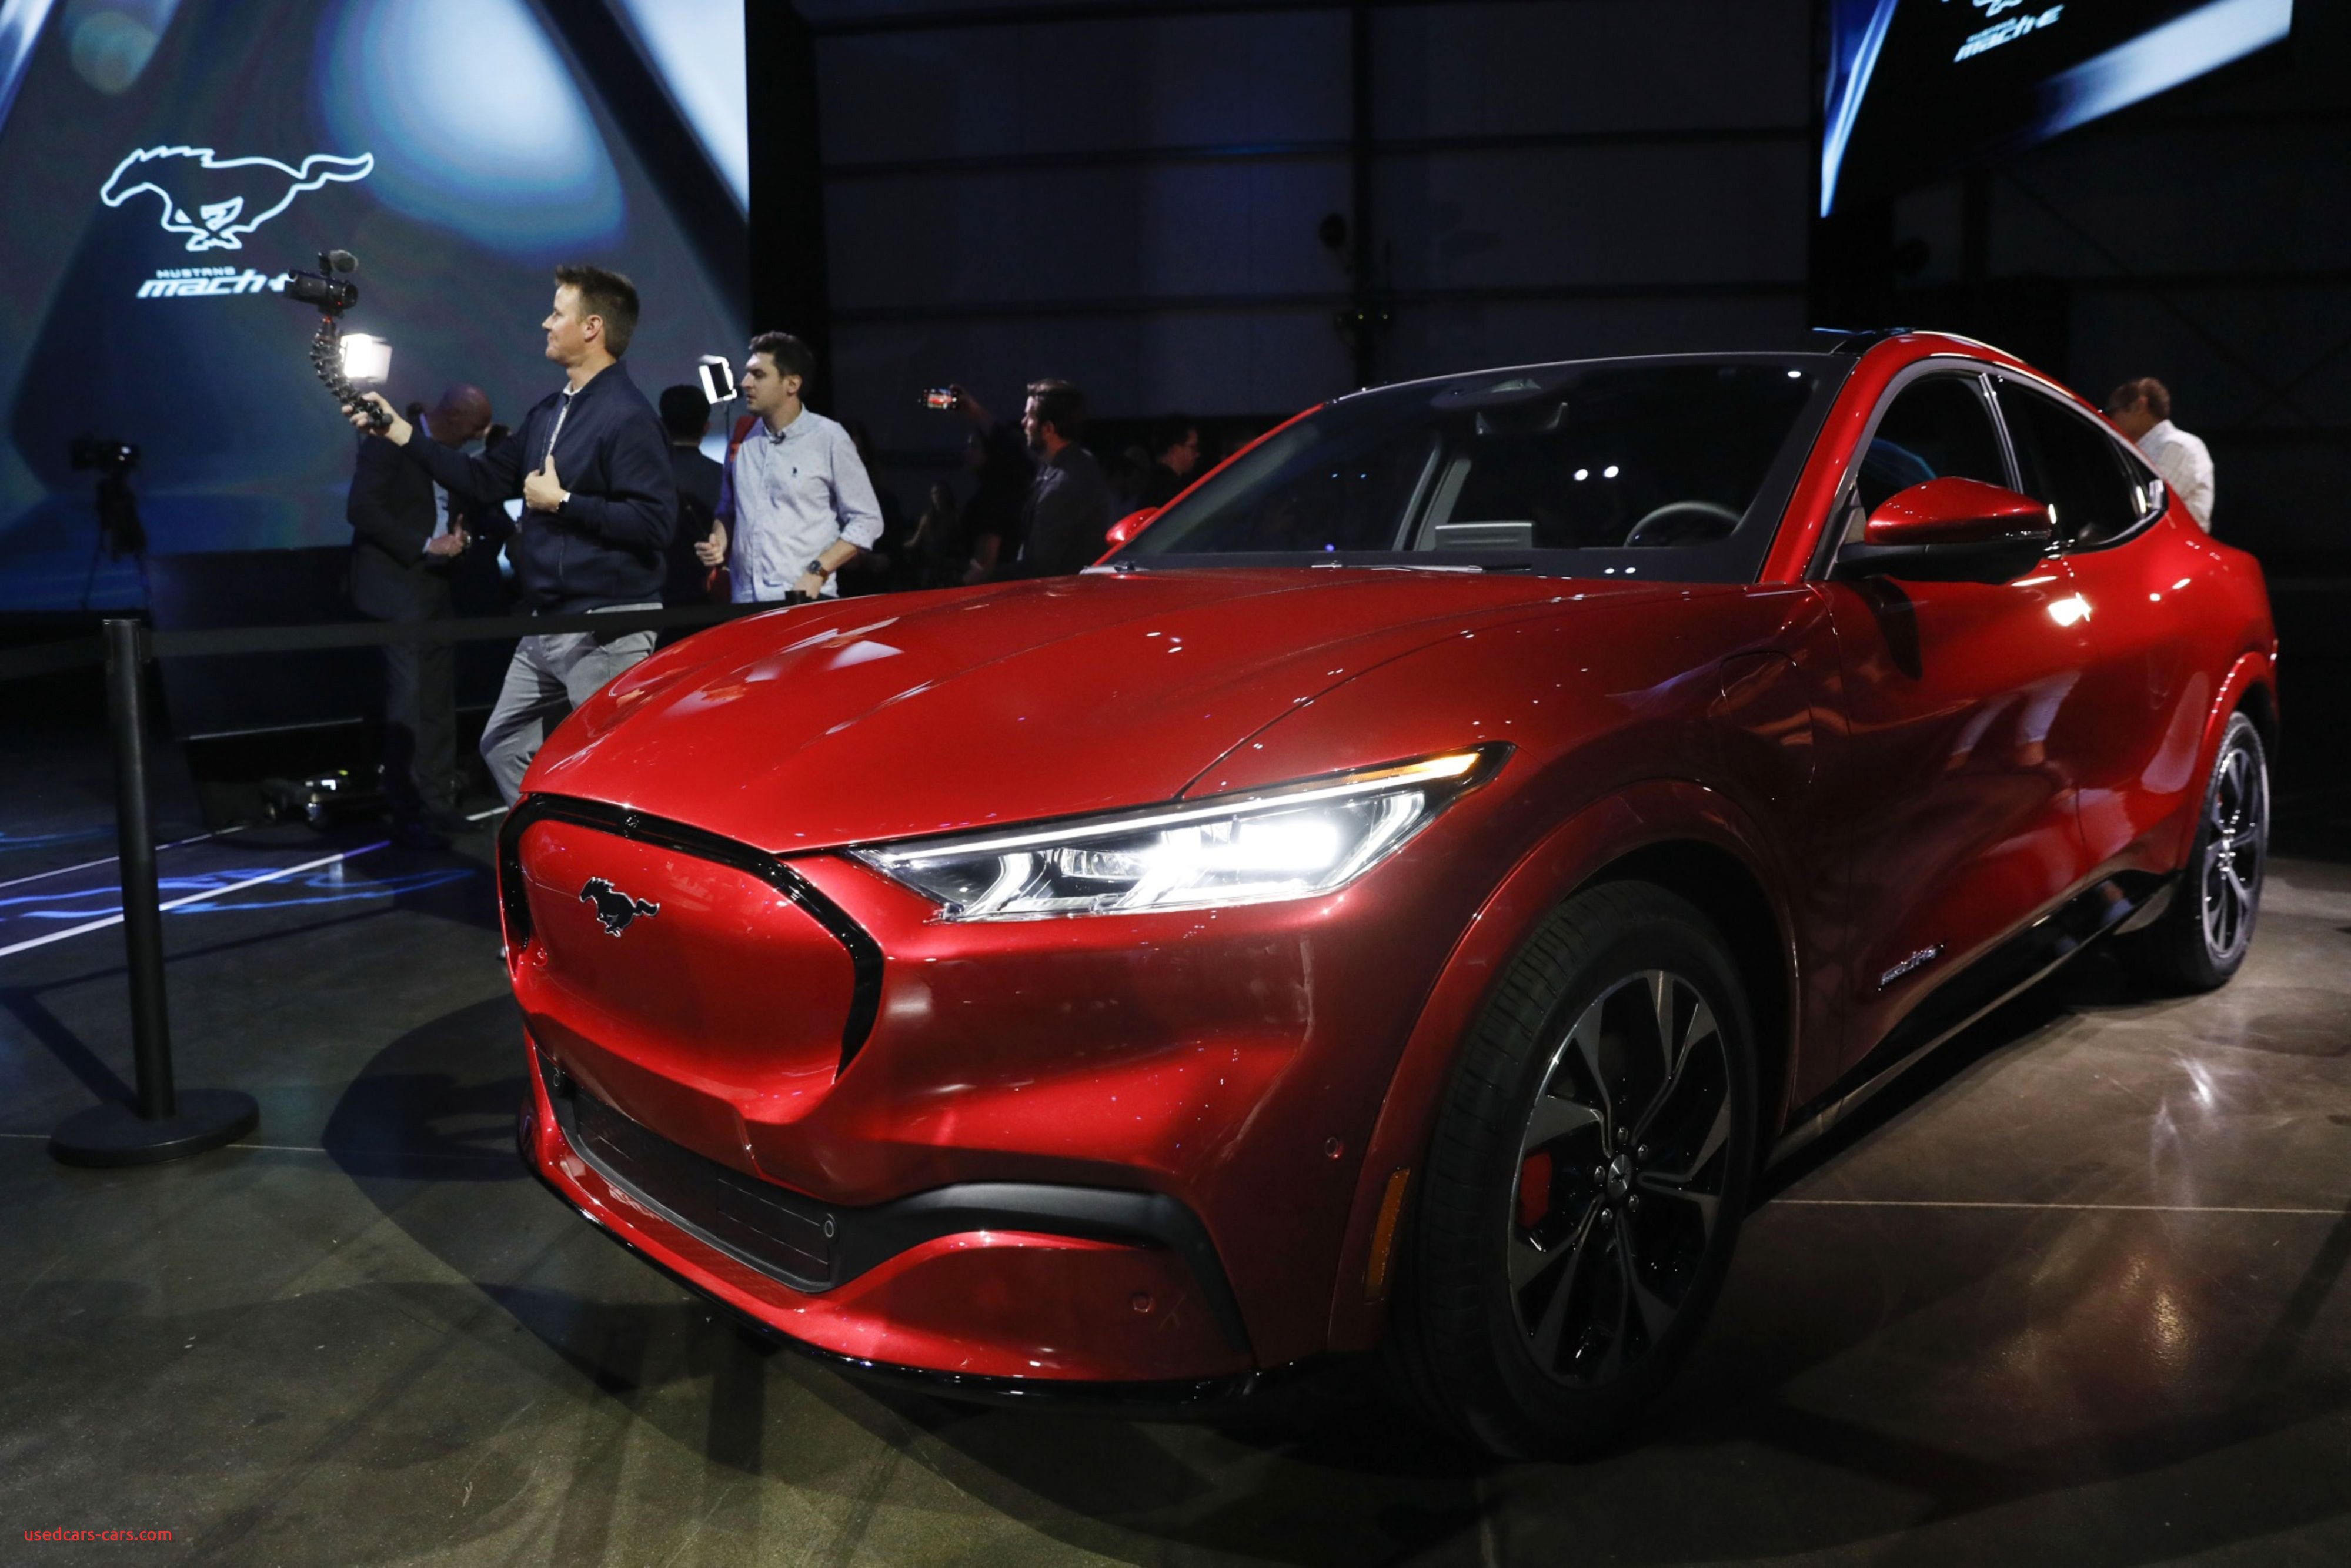 ford unveils electric mustangto challenge tesla dominance